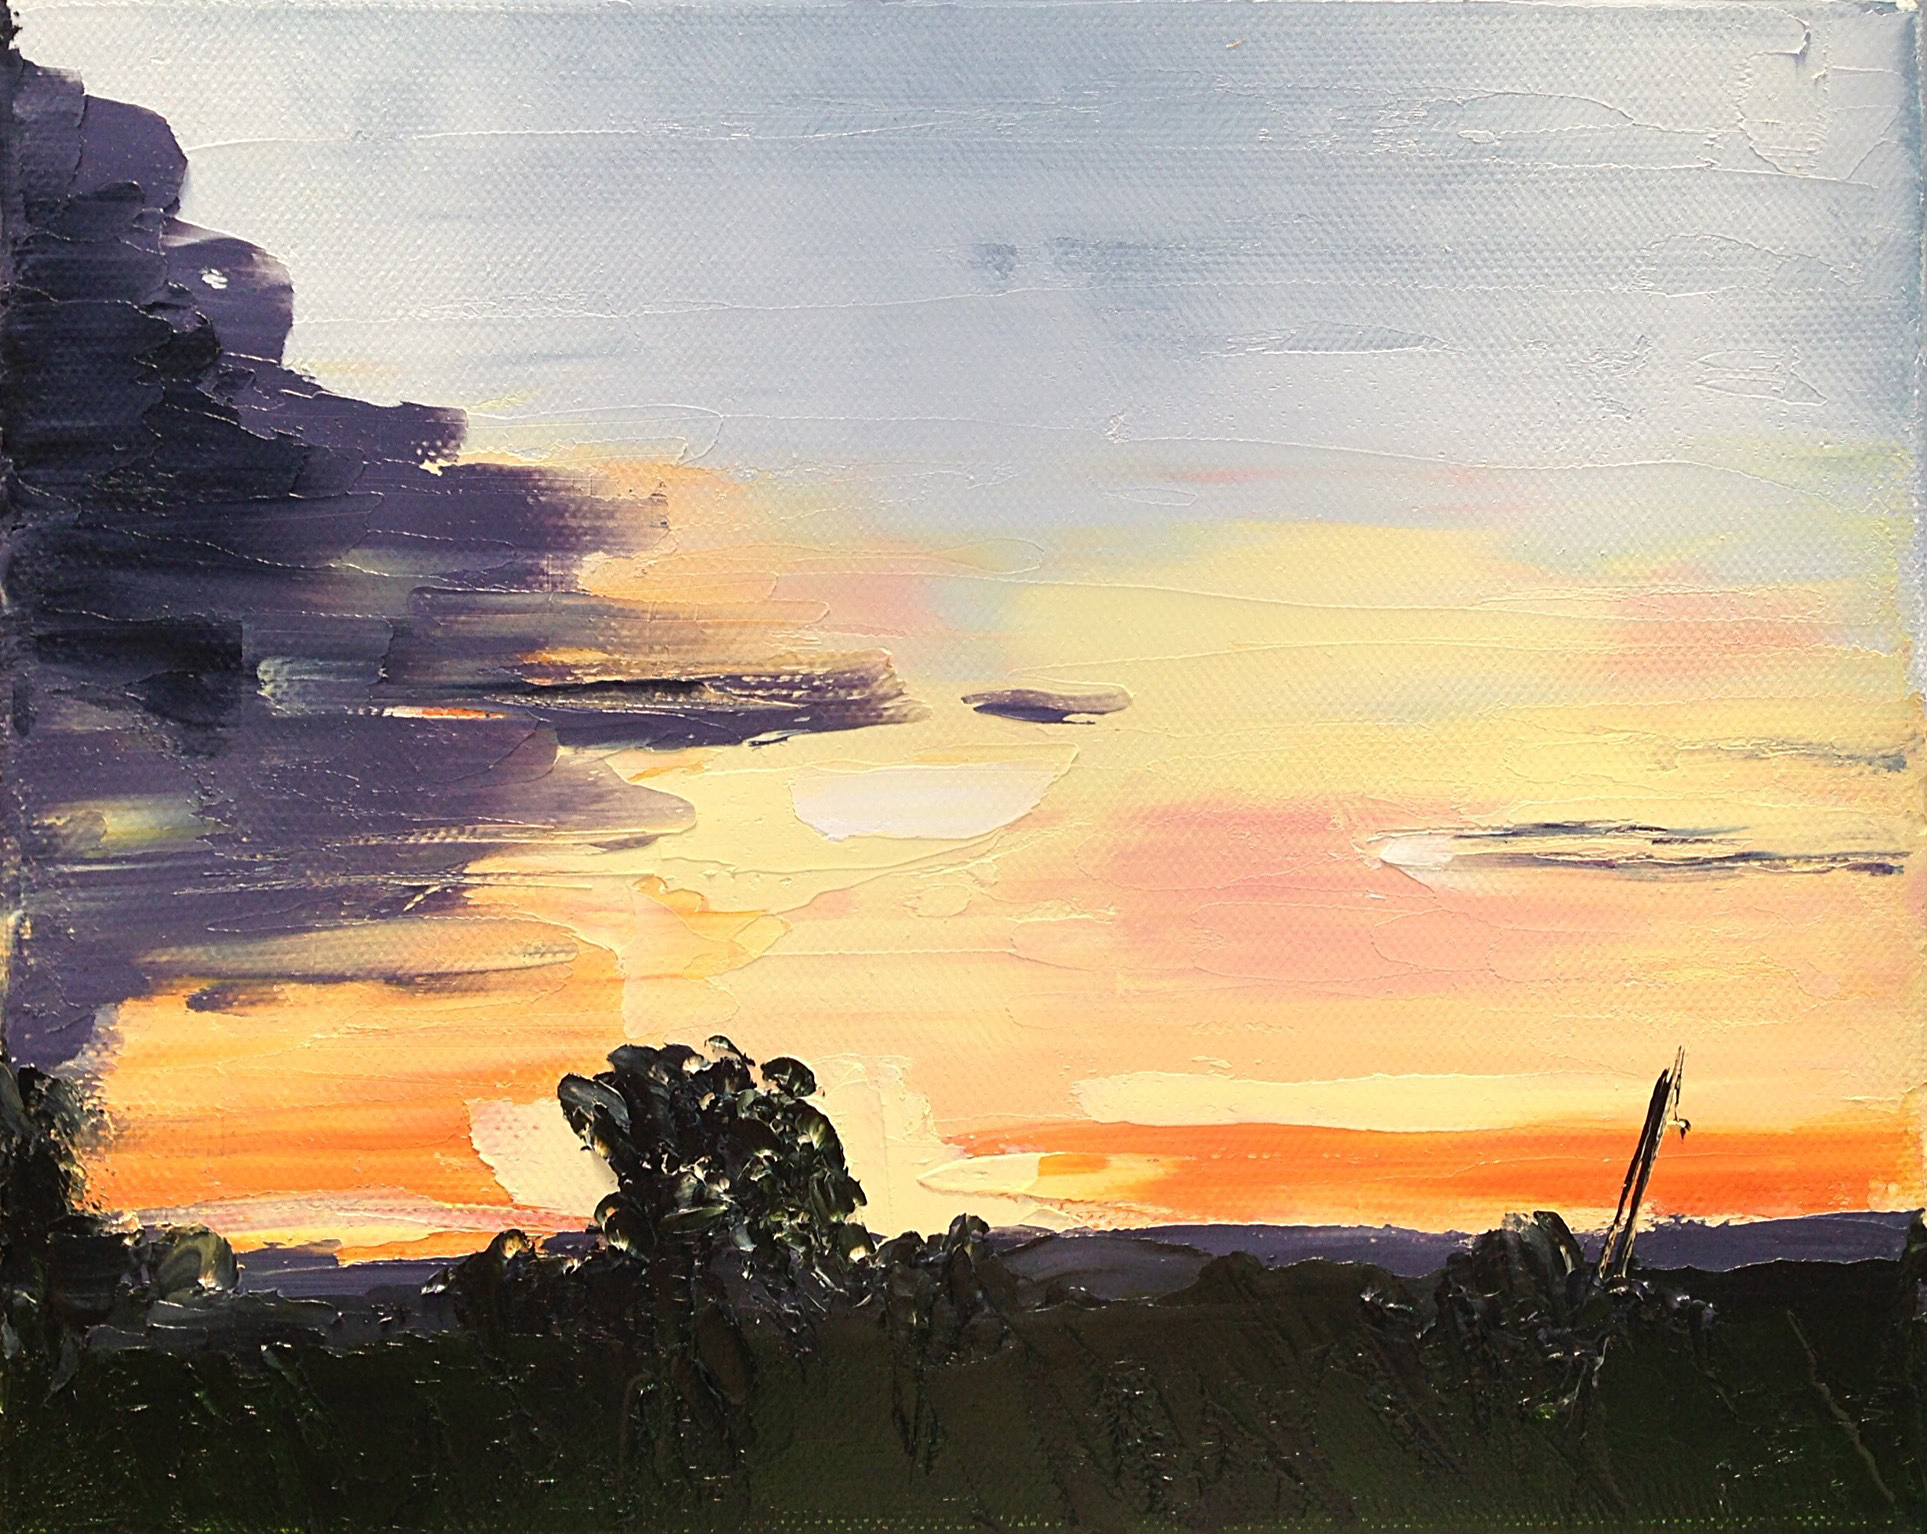 June 15, 5:35am, 23/30 8 x 10, oil on canvas.